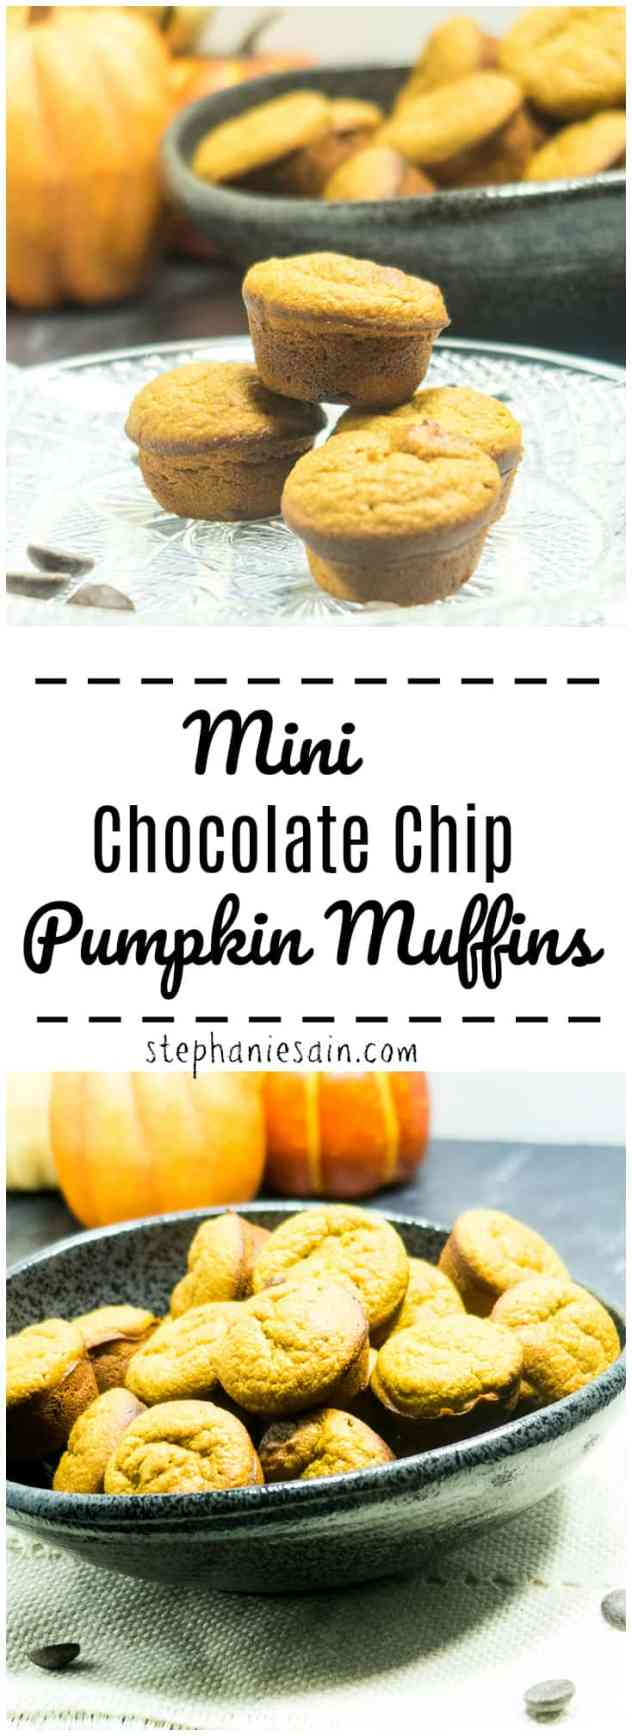 Mini Chocolate Chip Pumpkin Muffins are perfect for breakfast or snack. The perfect blend of pumpkin spice & chocolate. Made without added refined sugars, Gluten free & Vegetarian.